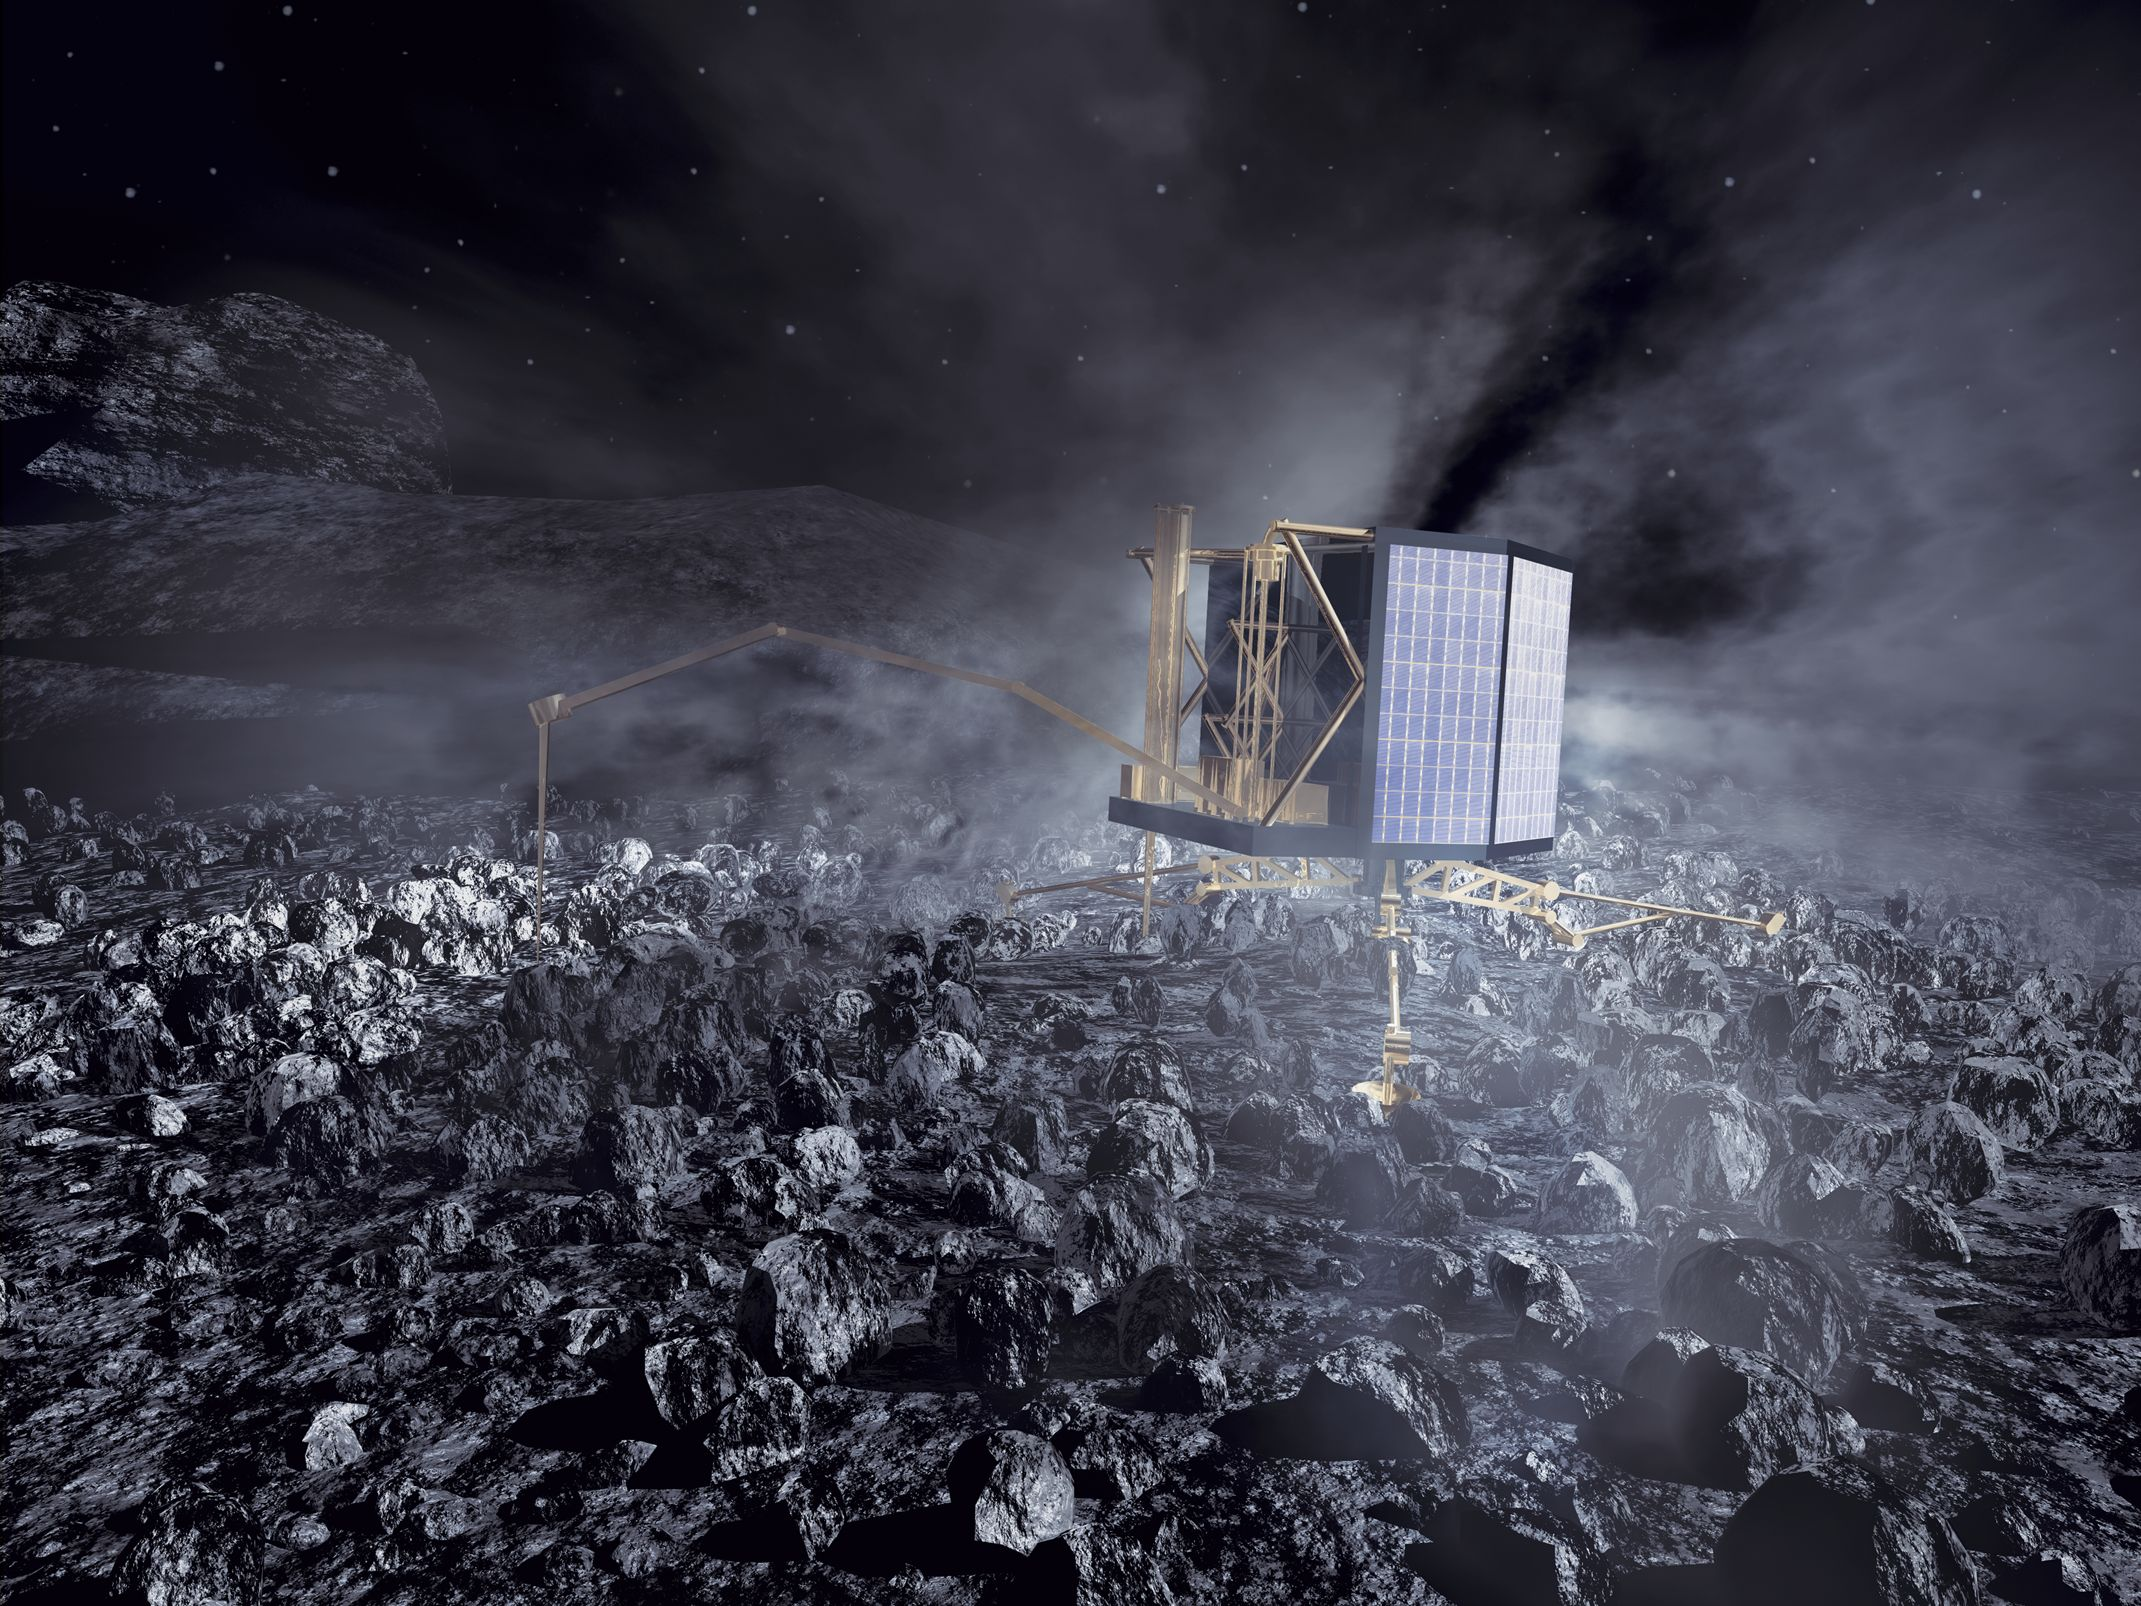 An artists interpretation of the Rosetta mission lander, named Philae, on the core of comet 67P/Churyumov-Gerasimenko. It's expected to land in November. Image credit: ESA / AOES Medialab